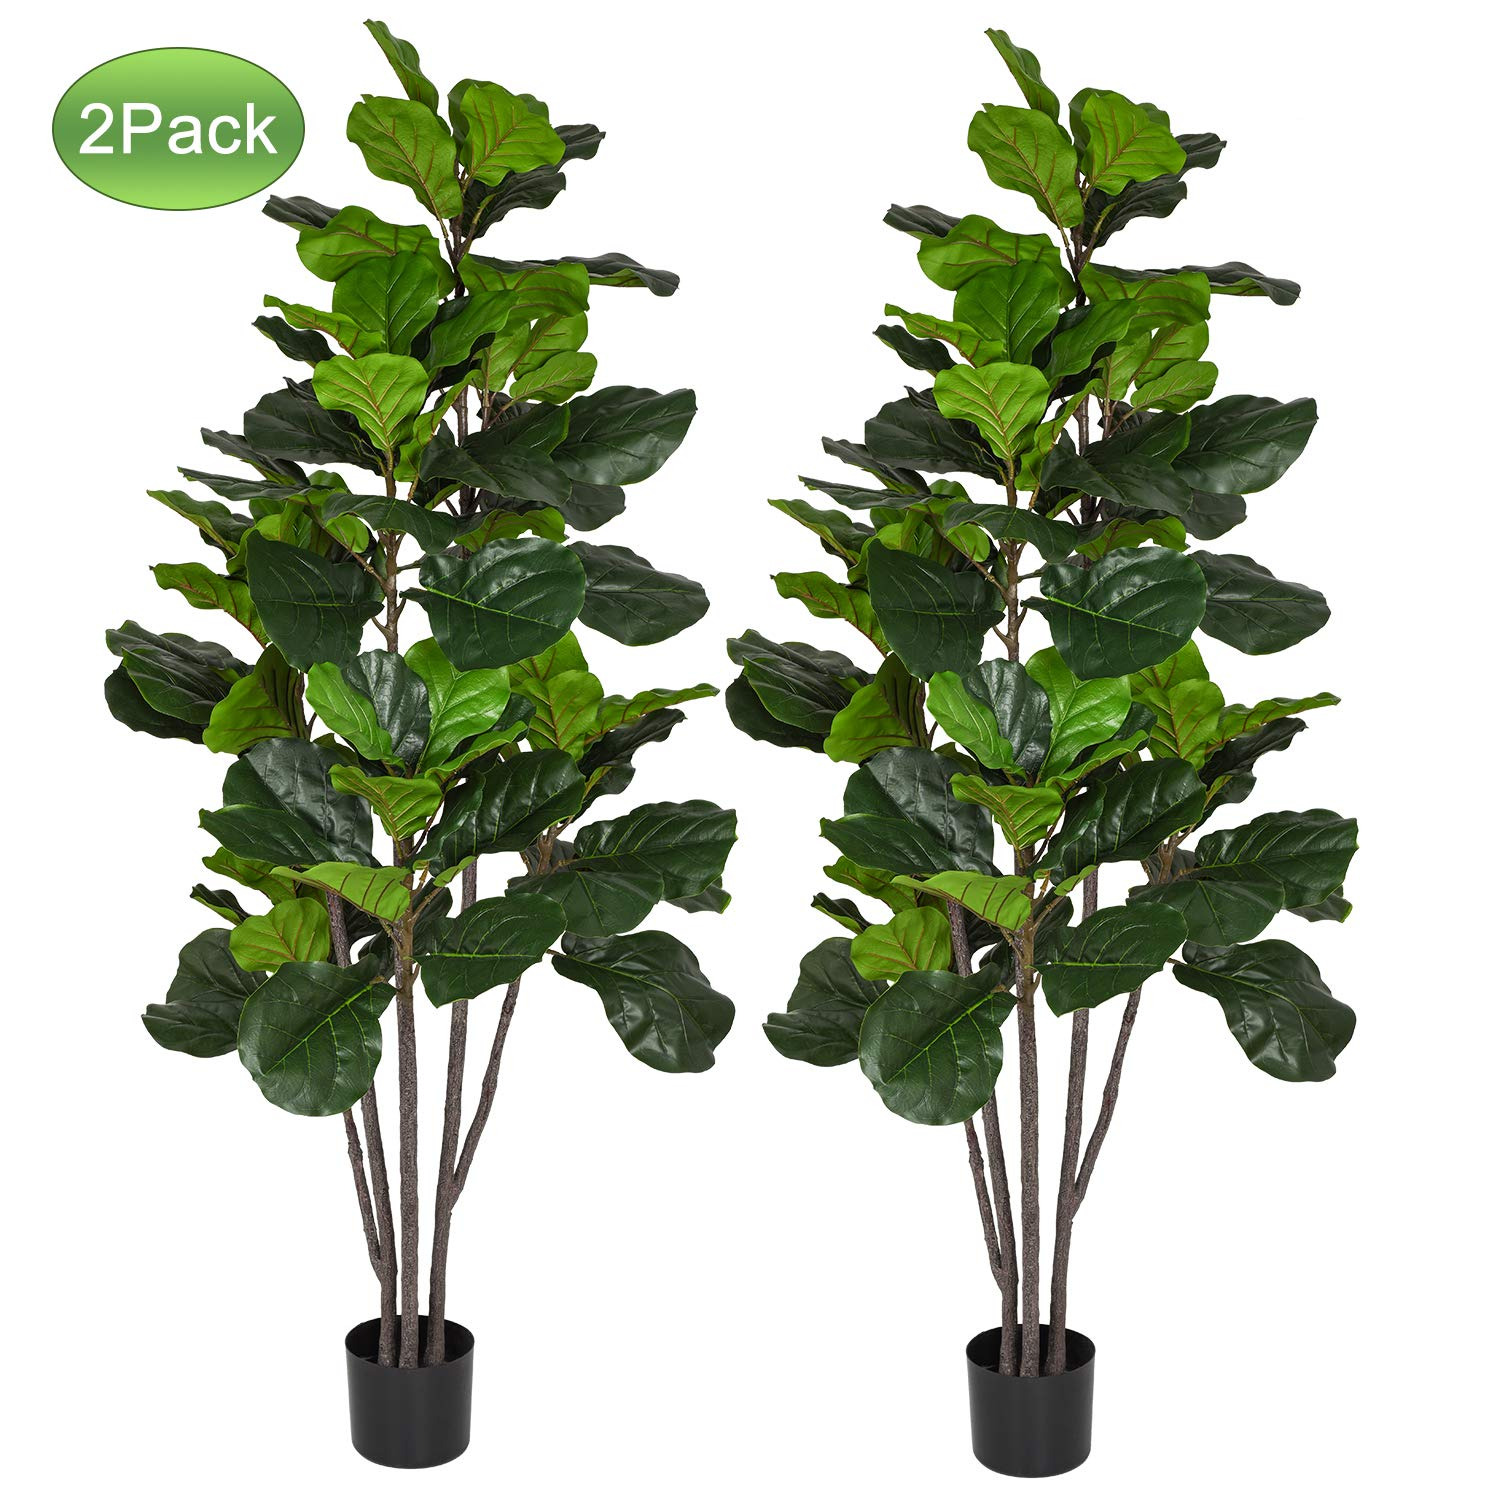 Woooow 6 Feet Artificial Fiddle Leaf Fig Tree in Planter,Artificial Tree Beautiful Fake Plant Fiddle Leaf Indoor/Outdoor UV Resistant Tree for Living Room Balcony Corner Decor,2PACK